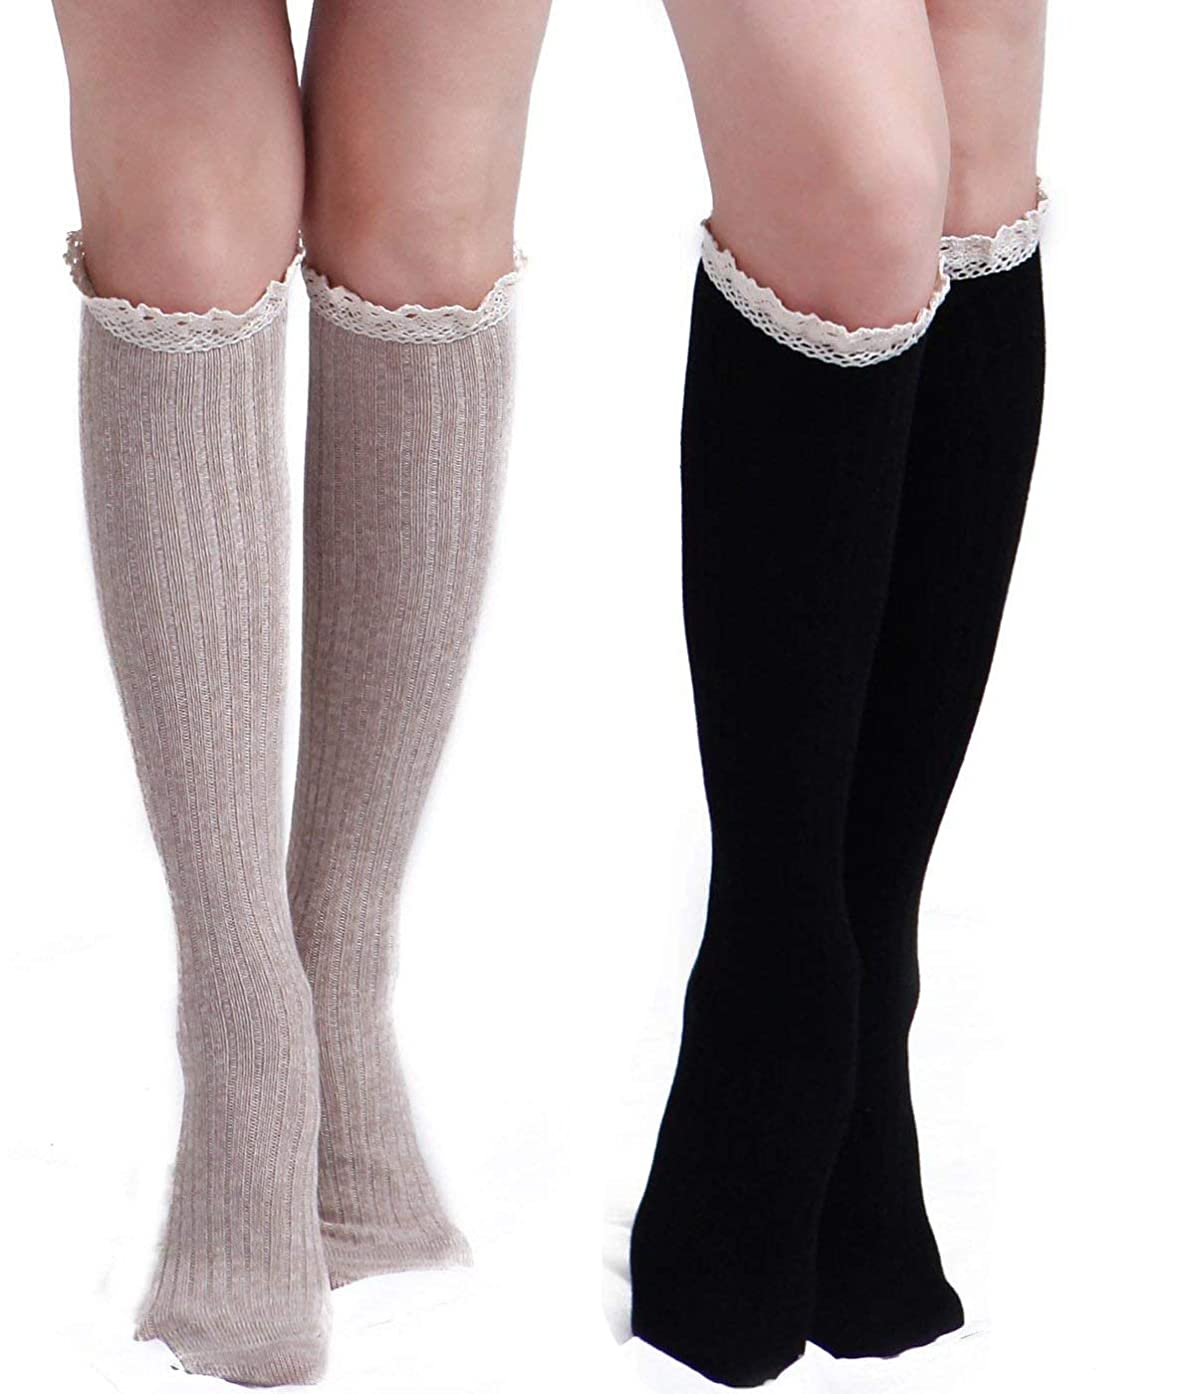 THXXE Womens Cotton Knit Boot Socks, Knee High Tube Socks Stockings with Lace Trim for women, 2 Pairs